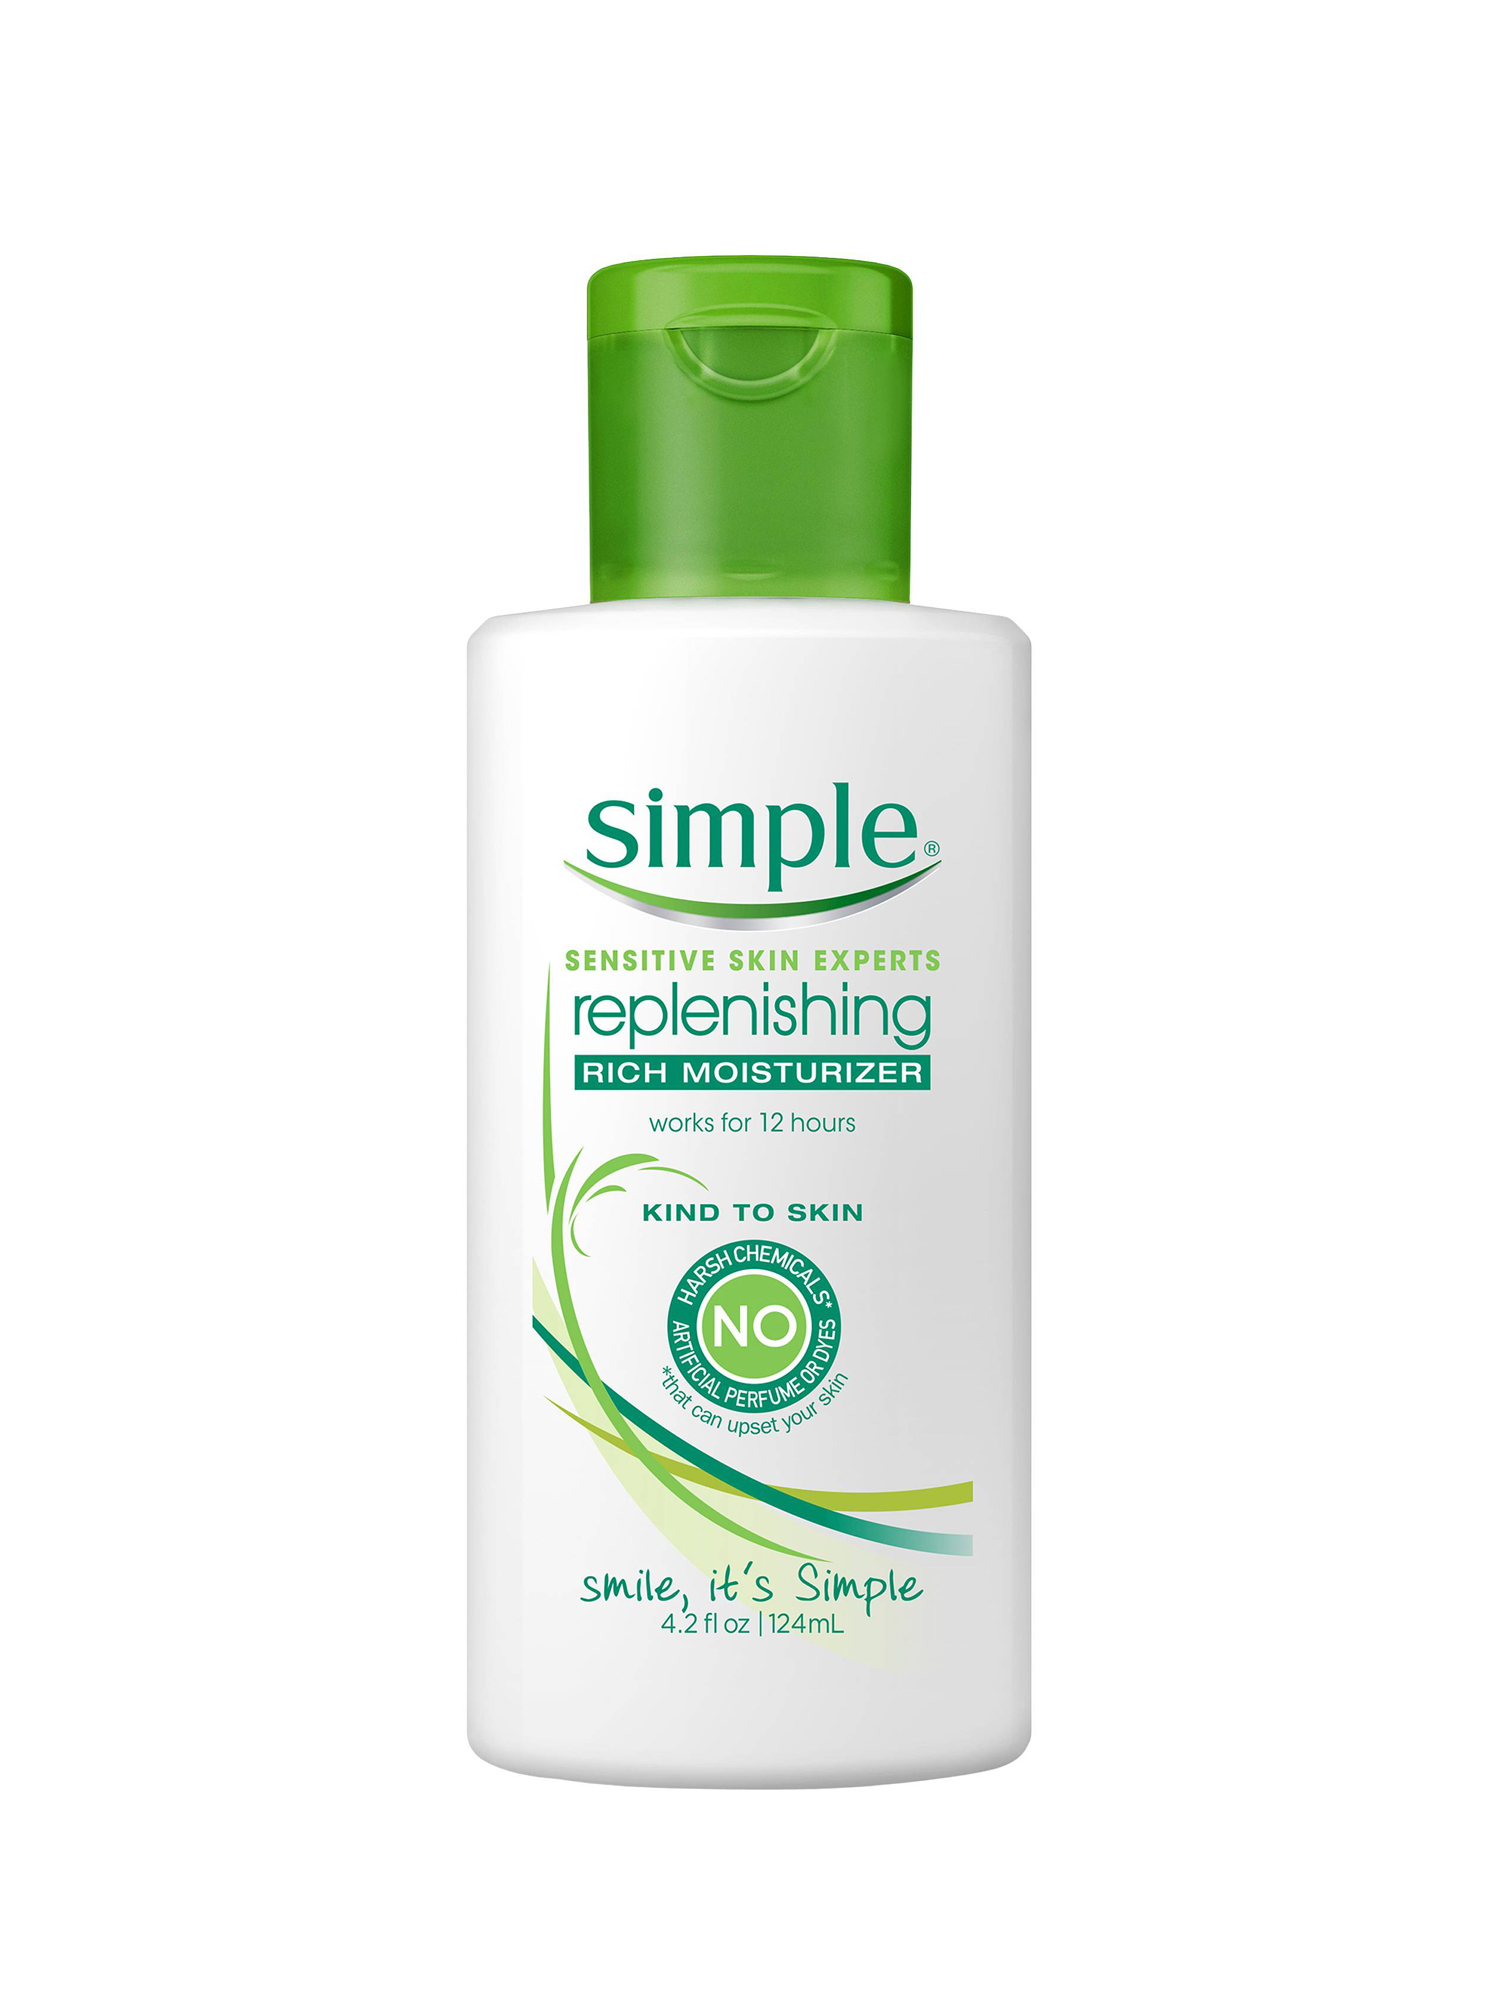 Right! good facial moisturizers dry skin topic